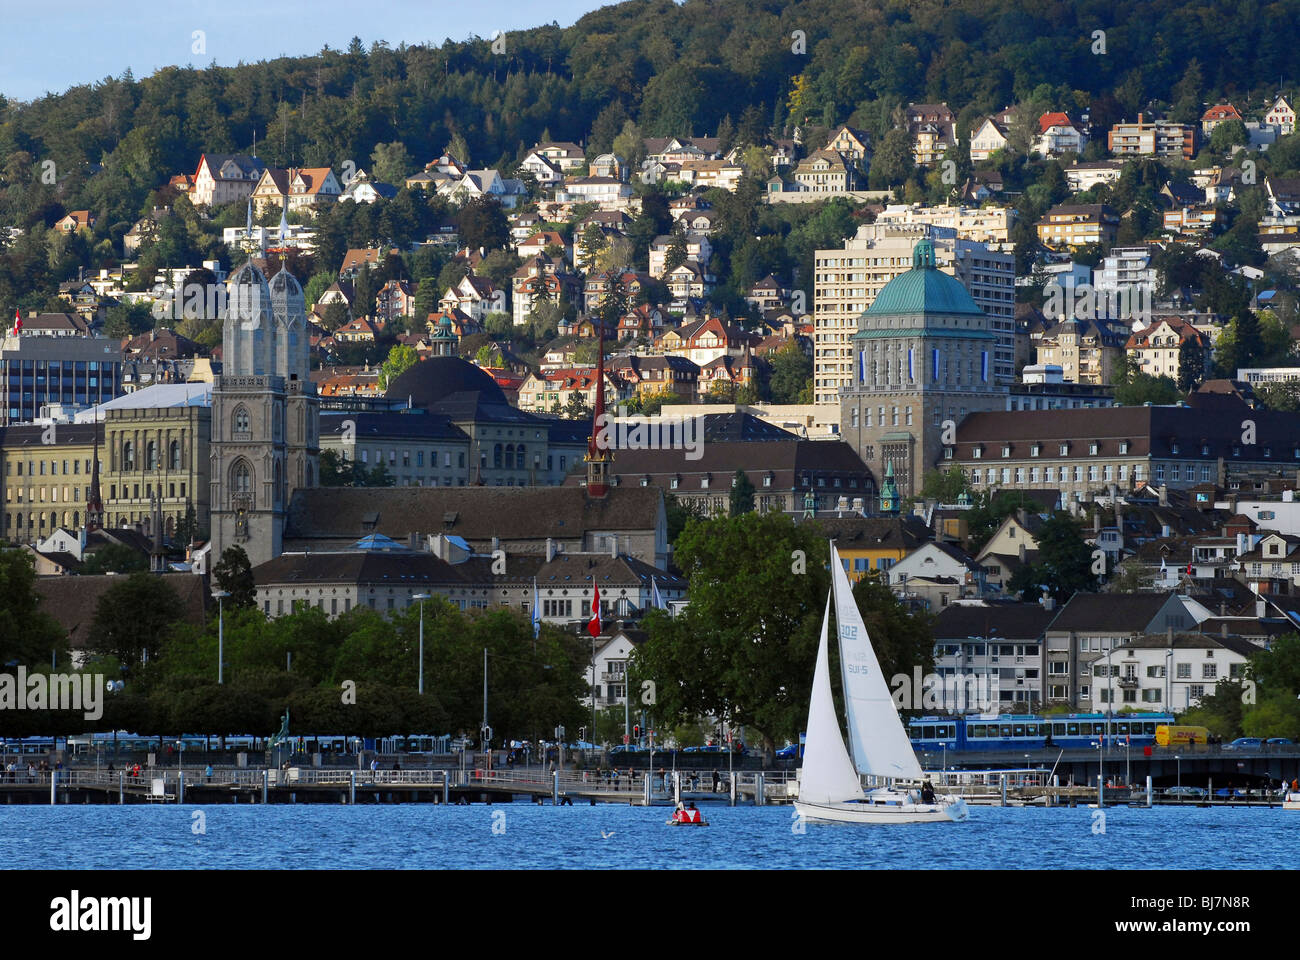 Townscape of Zurich and the Zurich Lake, Switzerland - Stock Image